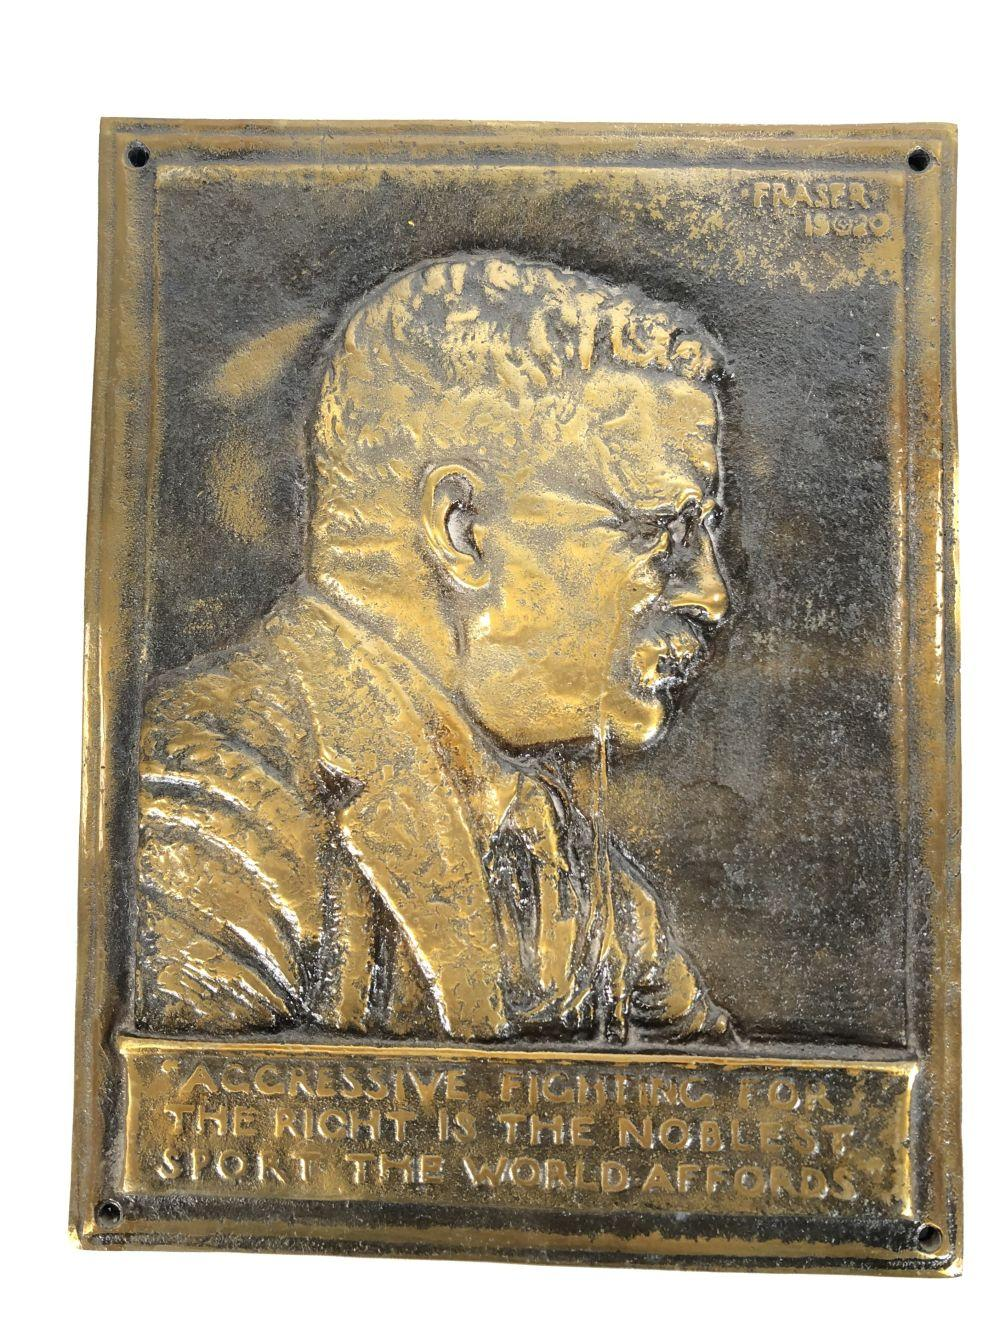 1920 Theodore Roosevelt Metal Plaque by James Earl Fraser